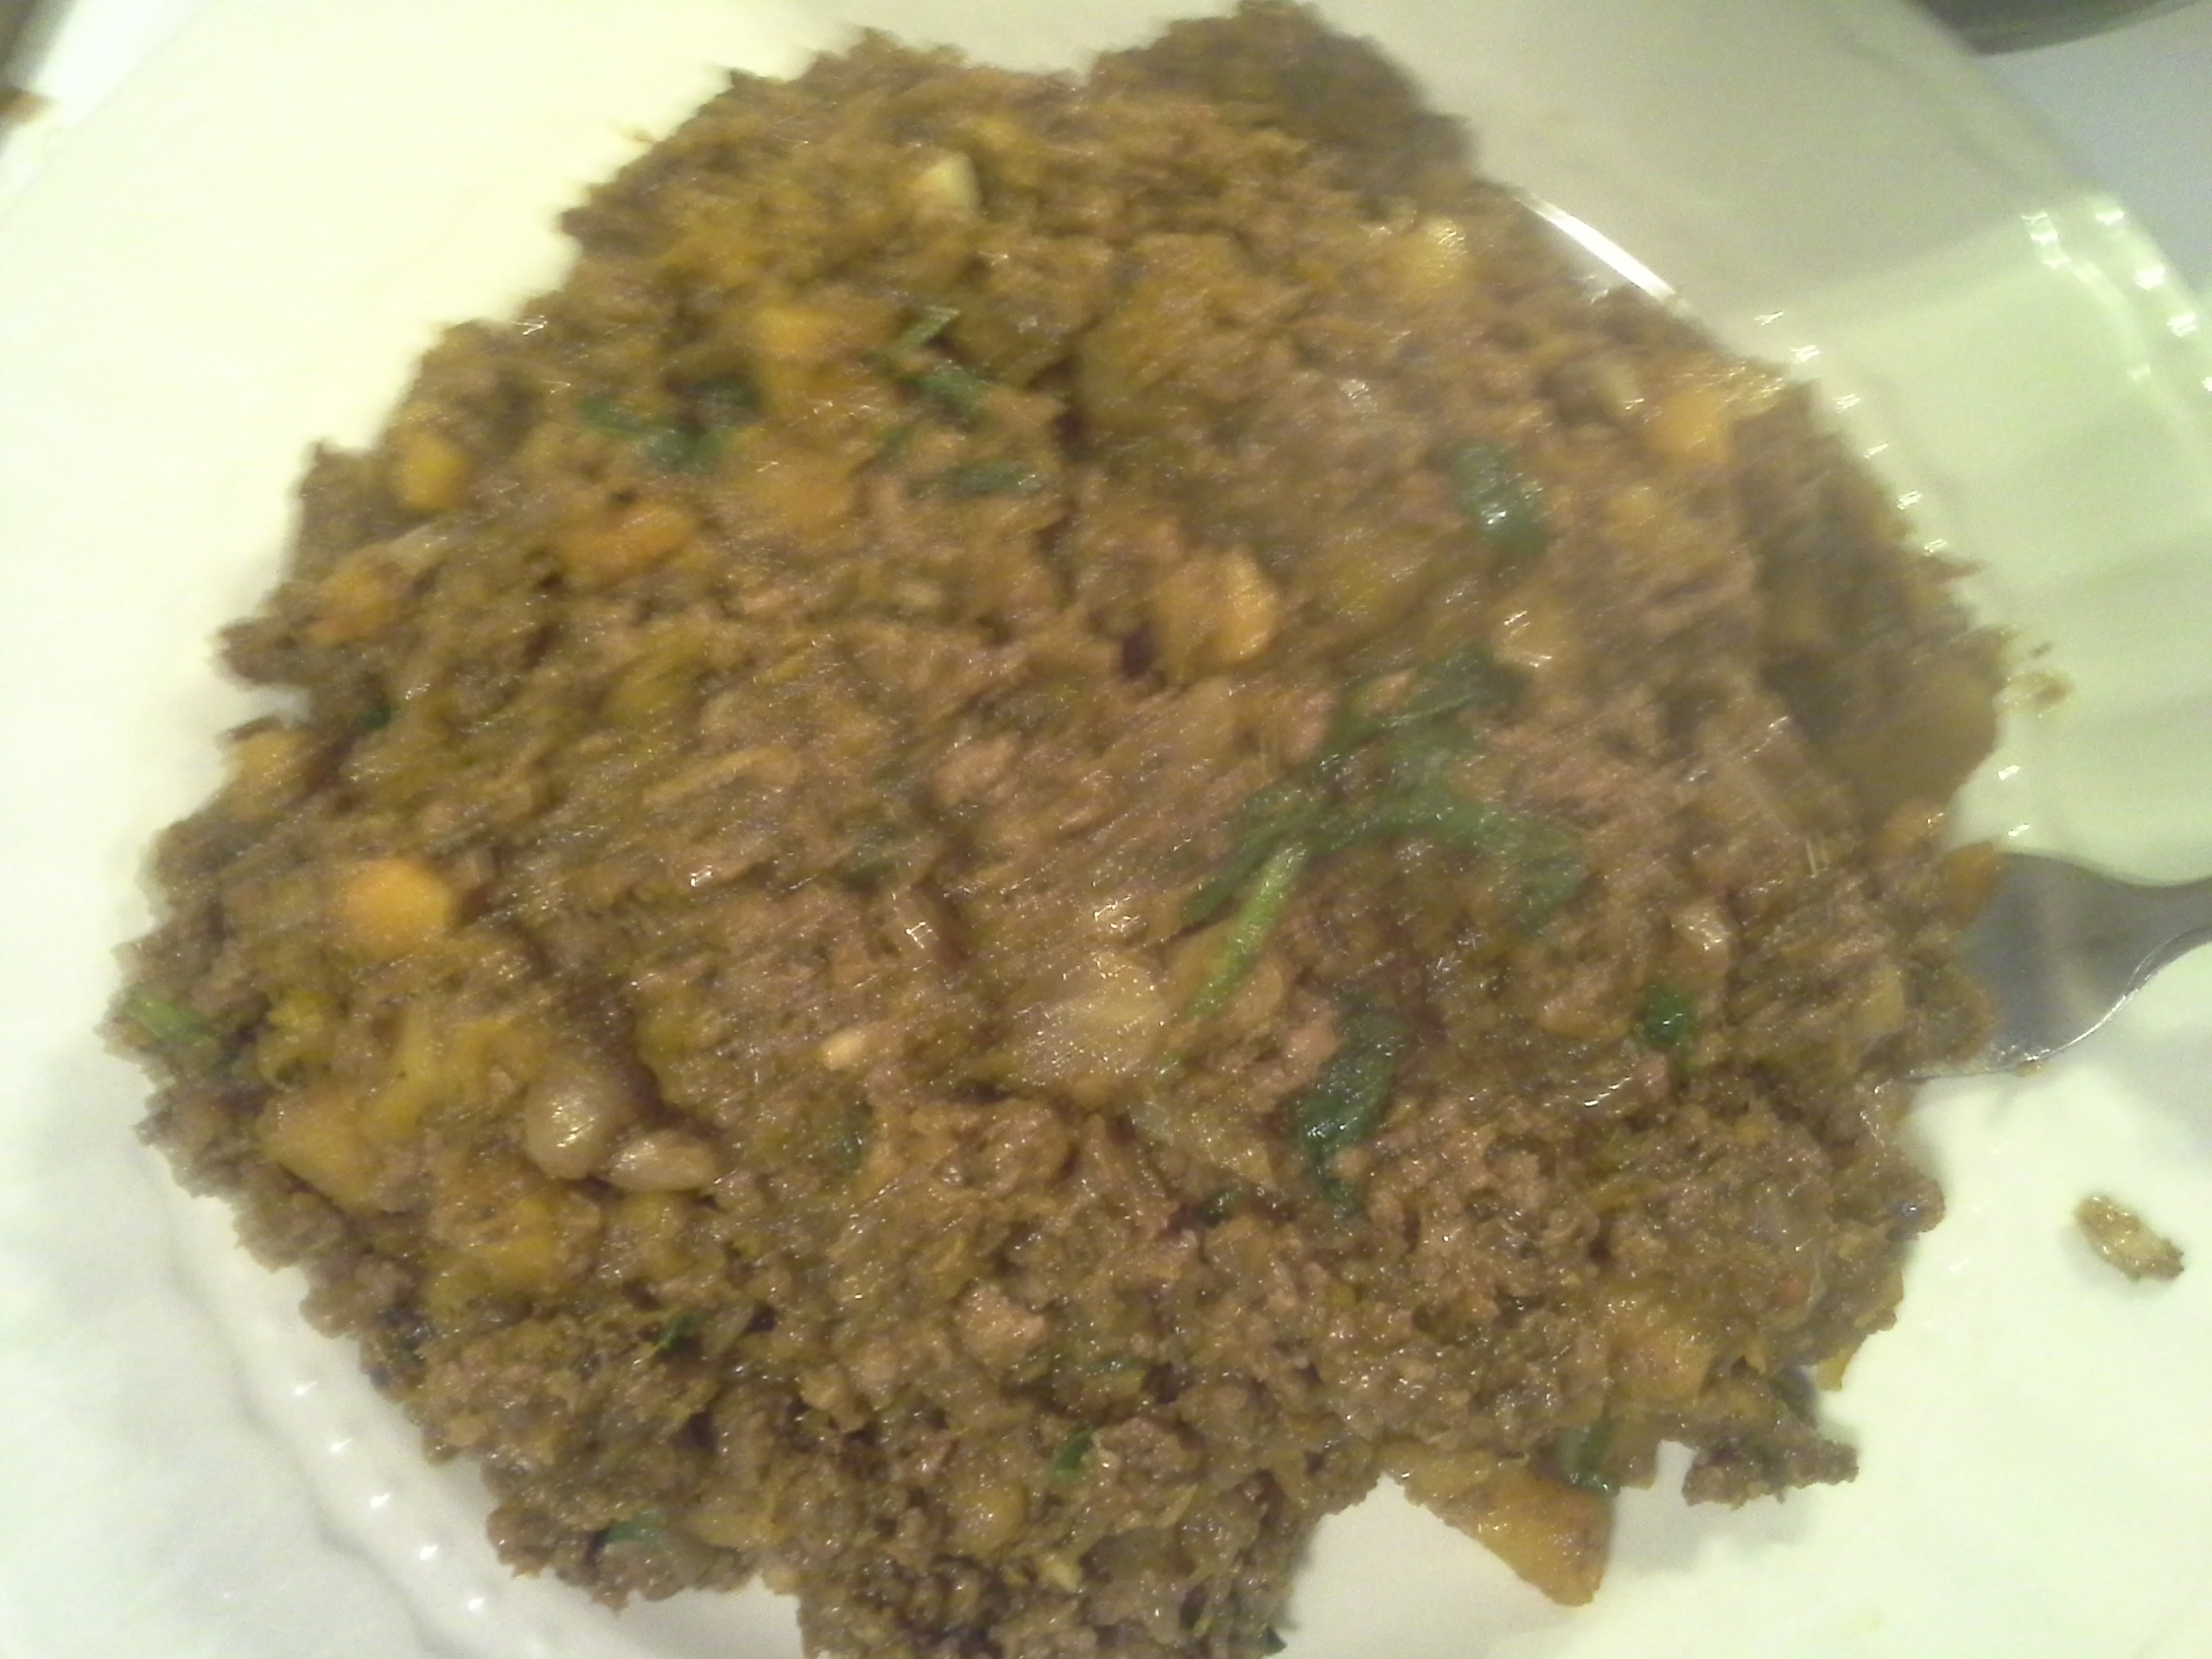 Dinner: 9:05 p.m. | 8 oz. beef, 1/4 butternut squash, 1 oz. baby kale/chard/spinach mix, 1/2 sweet onion, 4 cloves garlic, herbs & spices